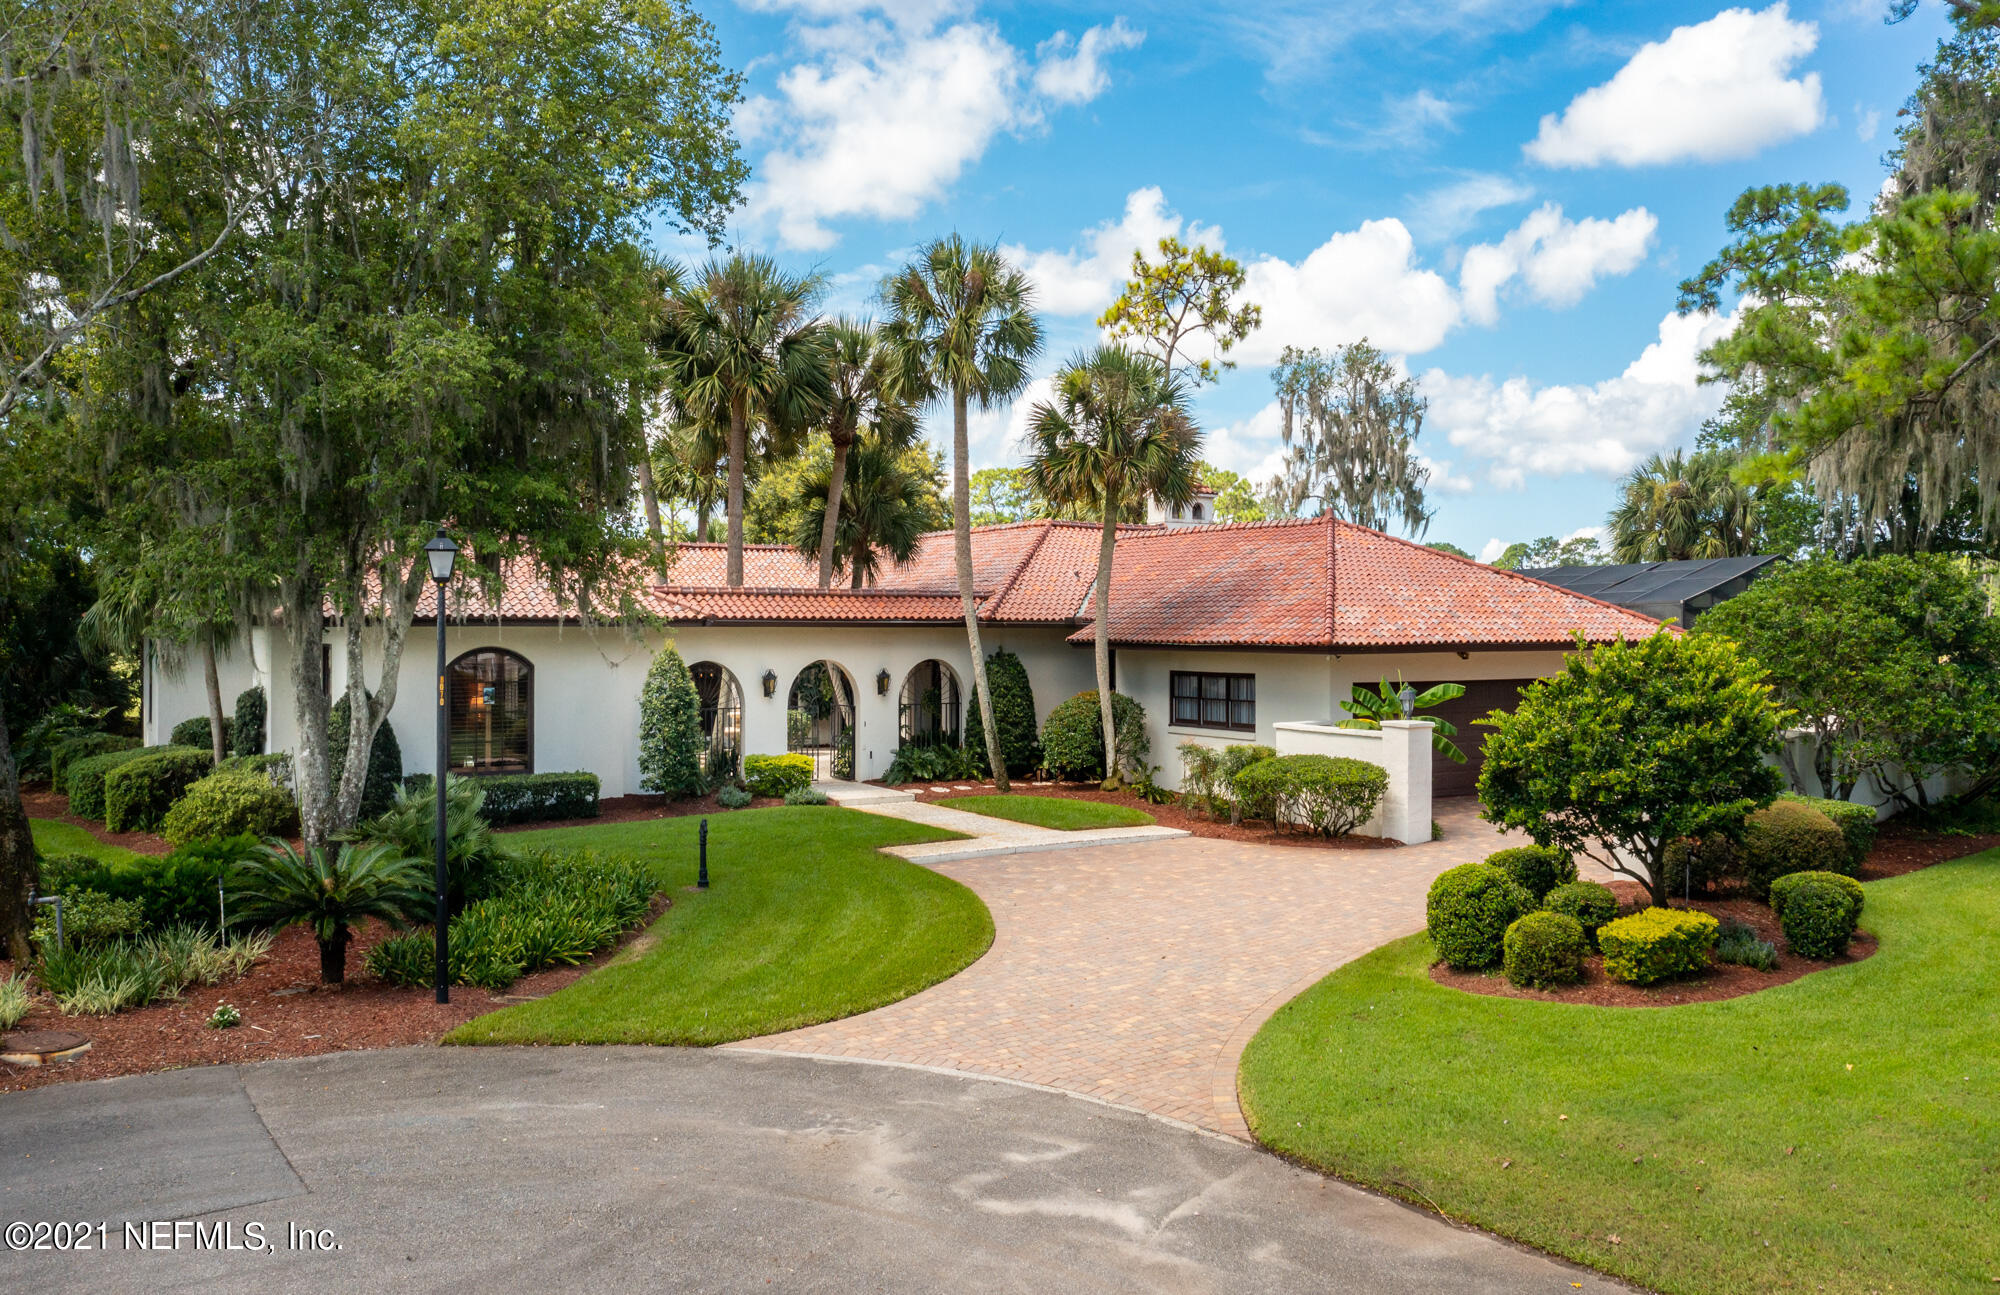 """***MULTIPLE OFFERS HIGHEST & BEST due by 9.10.21 7P.***A golf course ''mini'' estate home unlike any other in Deerwood Country Club. Situated on 2 separate parcels (one of them buildable) on a private cul-de-sac, you will feel as though you are in a world of your own! Upon entering the Spanish style courtyard adorned with a water feature, stoned paved walkway and breathtaking architectural arches, you will be transported to an entirely different place and time. It is all in the details, rounded archways, hexagon terra-cotta tiles from Mexico throughout, custom hand painted tile work in the entryway, wood beams vaulted ceilings, and built in book shelves, to name a few. This home was meant for hosting, with 2 large living spaces, a massive dining room, multiple outdoor living spaces. Did we mention....the MULTIPLE golf views  and lake views from almost every room? This home is waiting for a new owner to come and make their own family memories. Do not miss this unique opportunity.  Pool heater being sold, """"AS IS"""". The Primary suite and Dinning Window Treatments do not convey."""